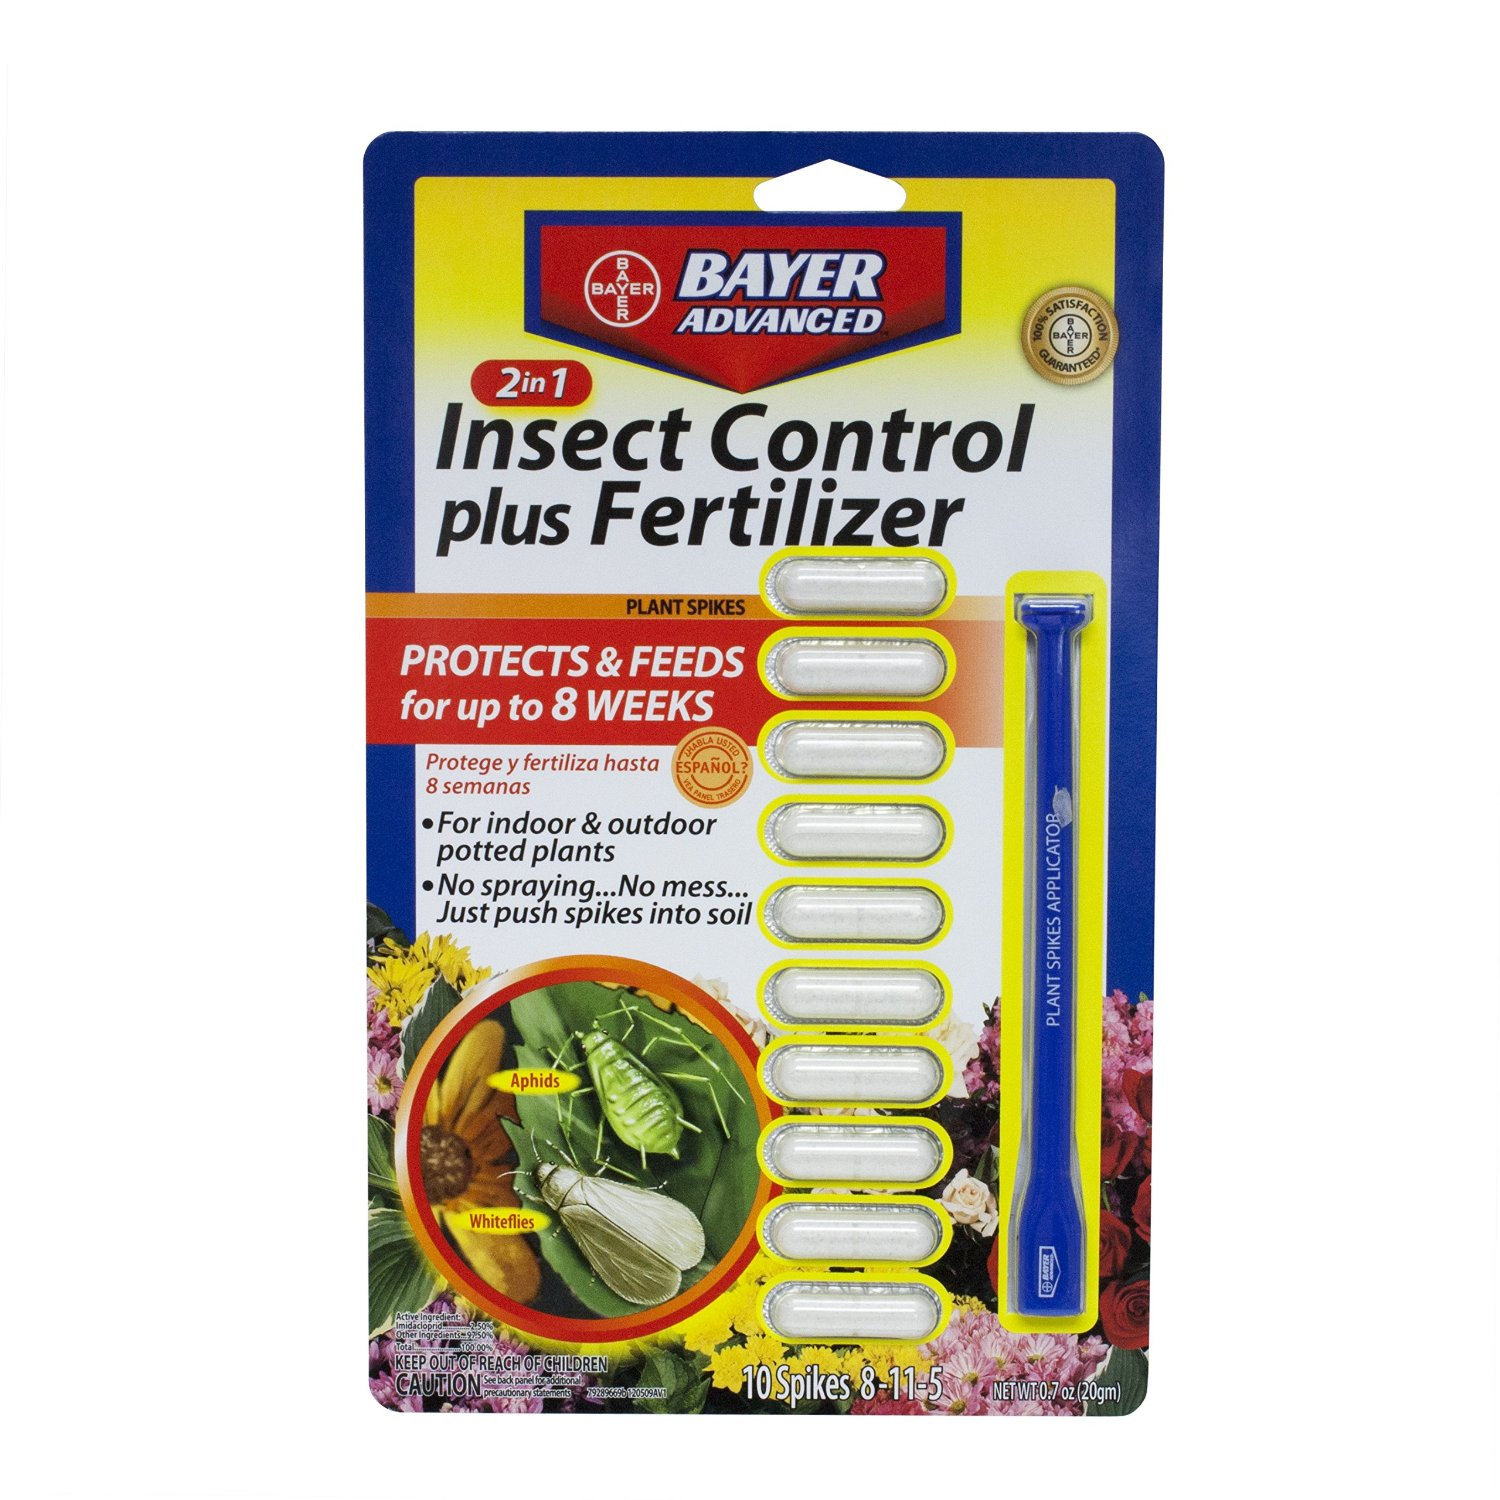 Bayer Advanced 2-In-1 Insect Control Plus Fertilizer Plant Spike 1 spike 10 tablets